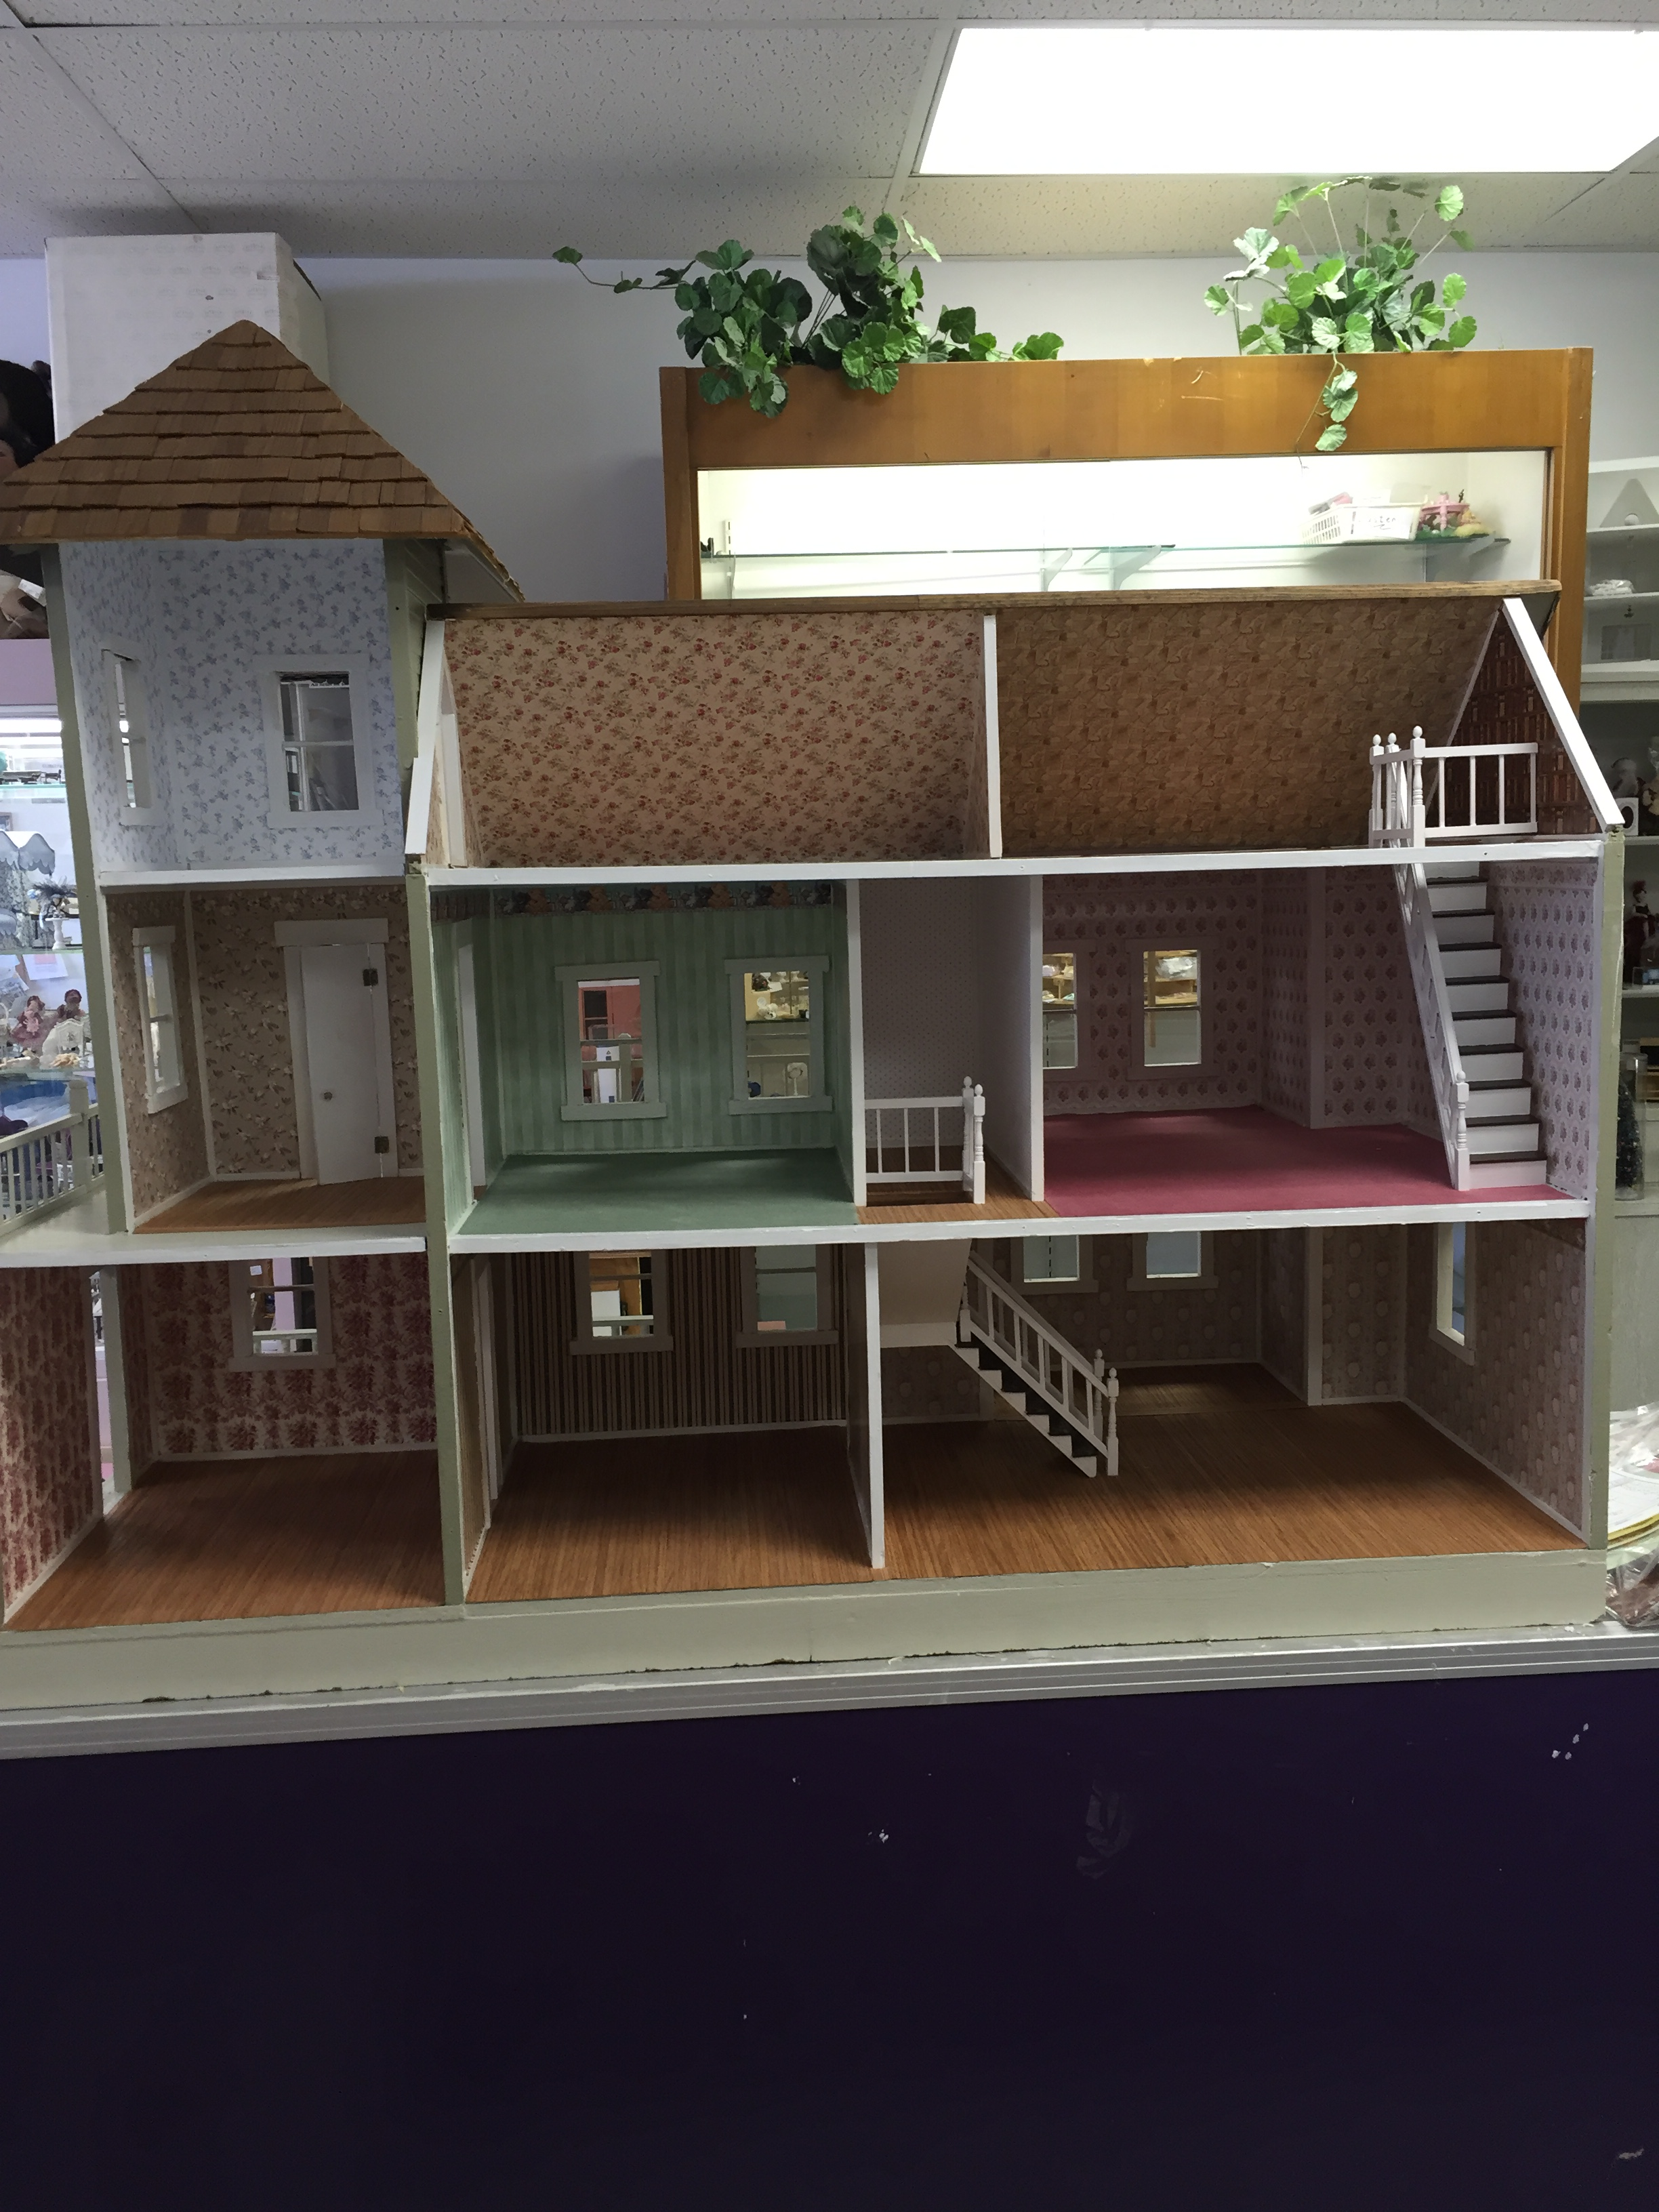 Renovation before and after circus dollhouse for Renovation projects before and after